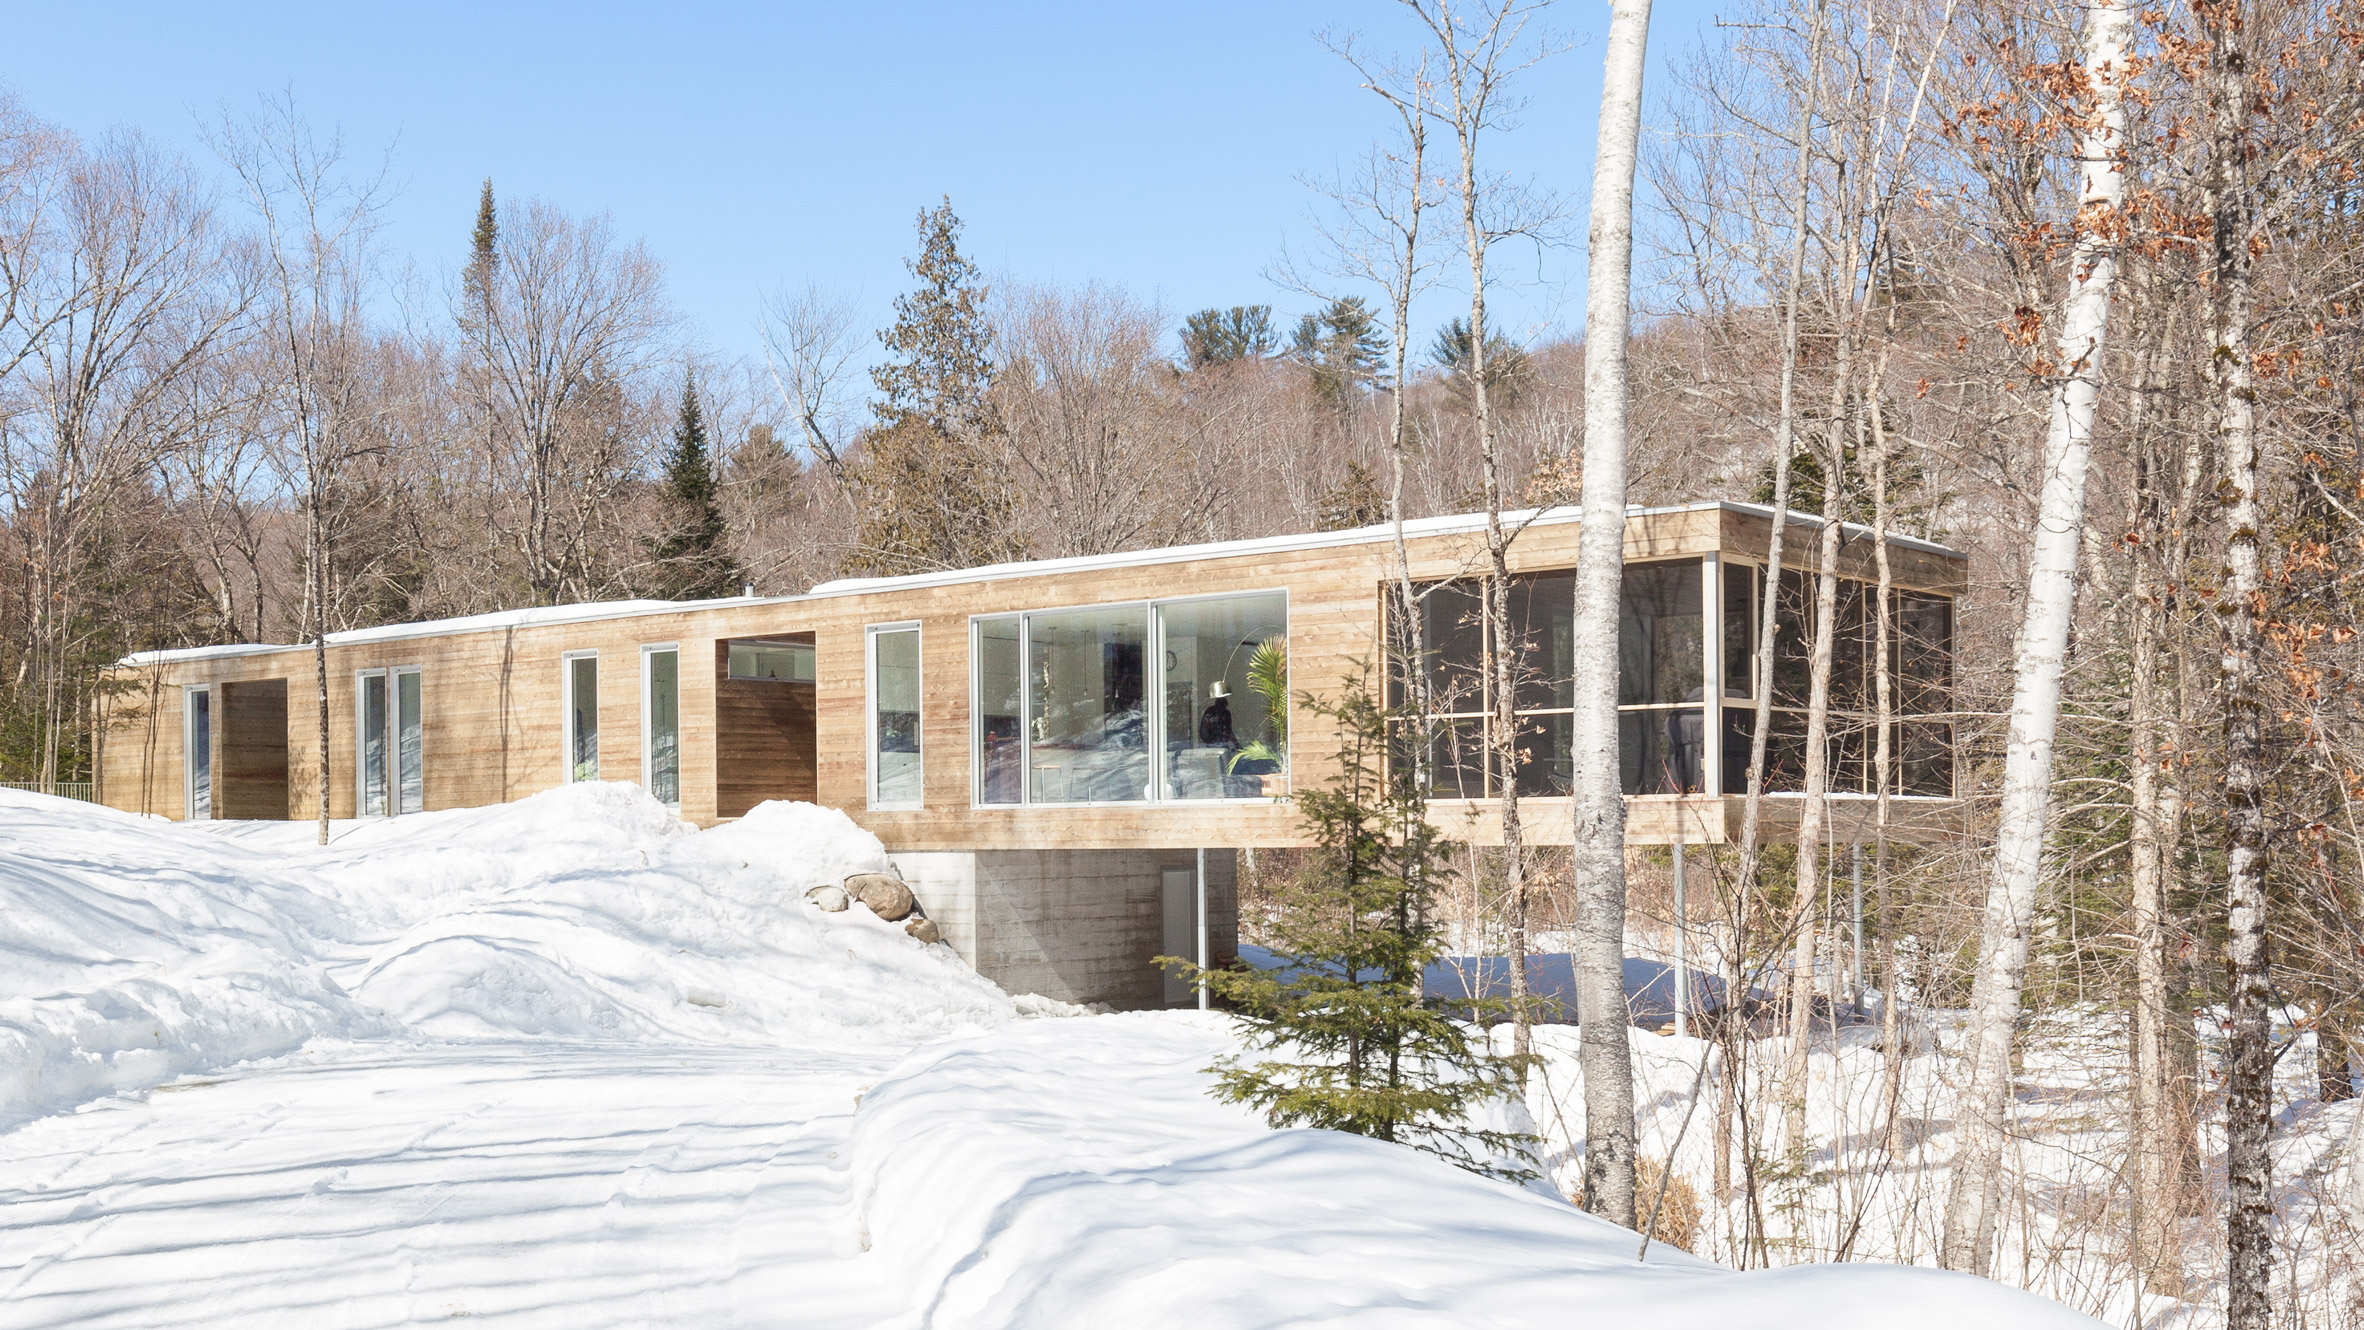 Atelier Pierre Thibault completes long narrow home in Quebec forest